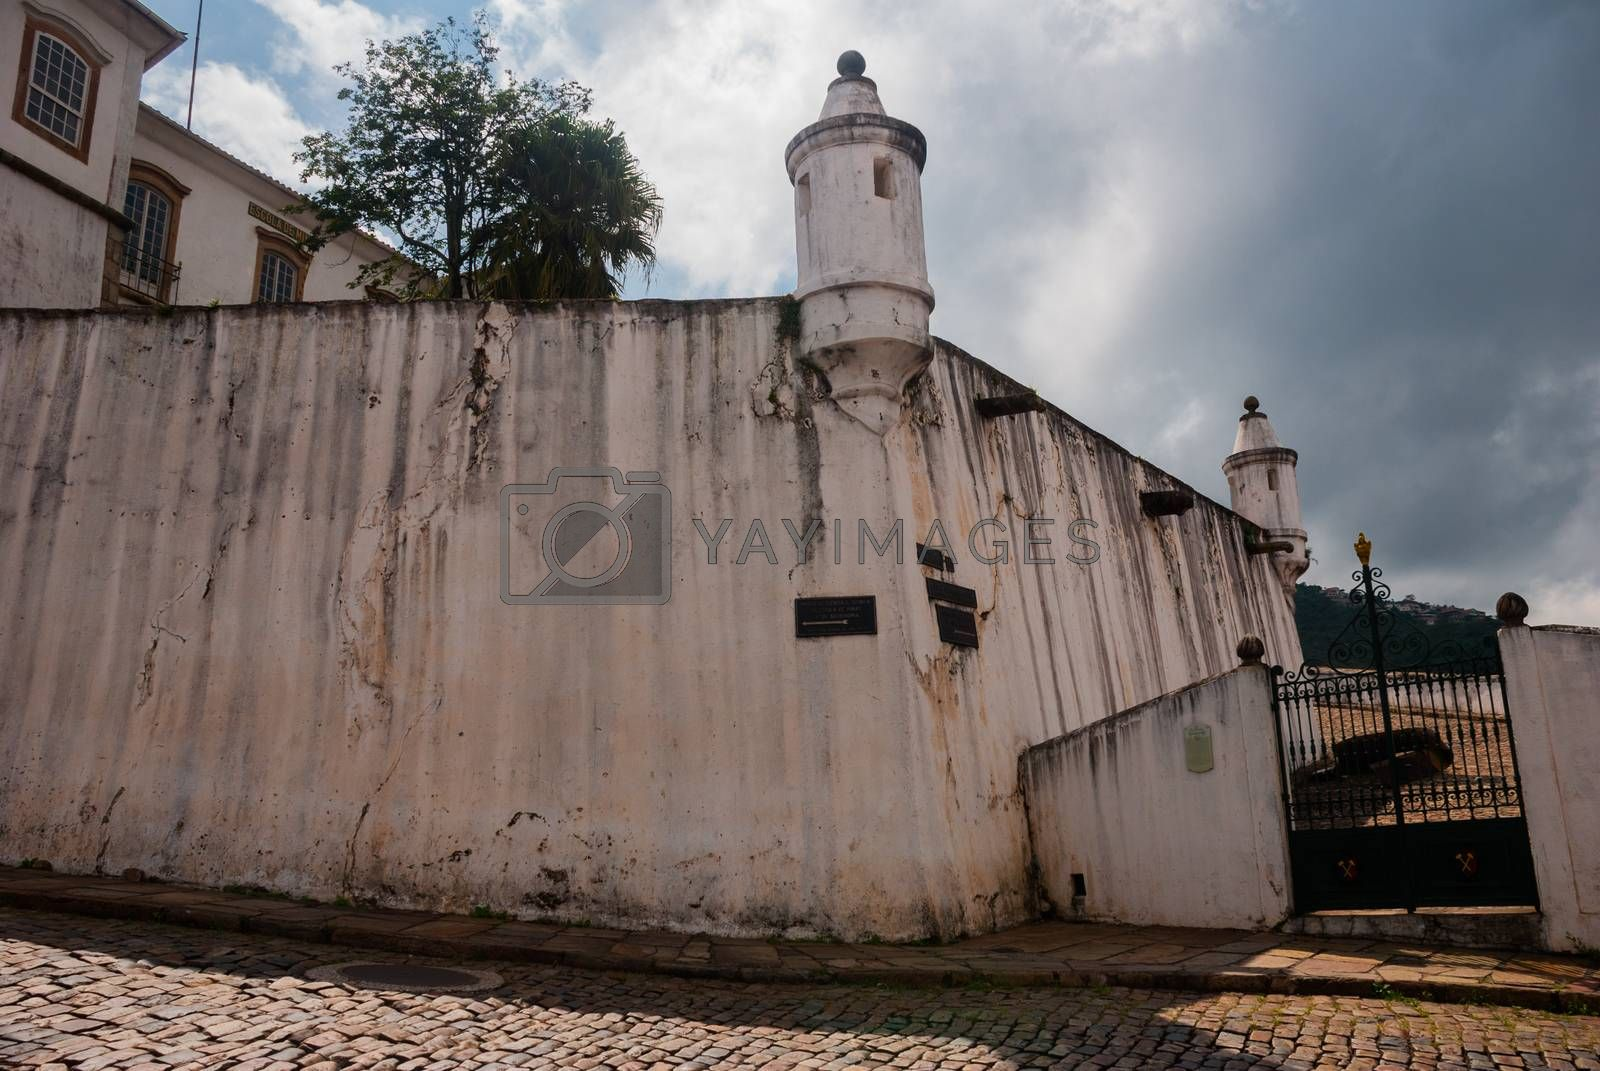 OURO PRETO, MINAS GERAIS, BRAZIL - APRIL 2019: Ancient and historical fortification in colonial architecture at Ouro Preto